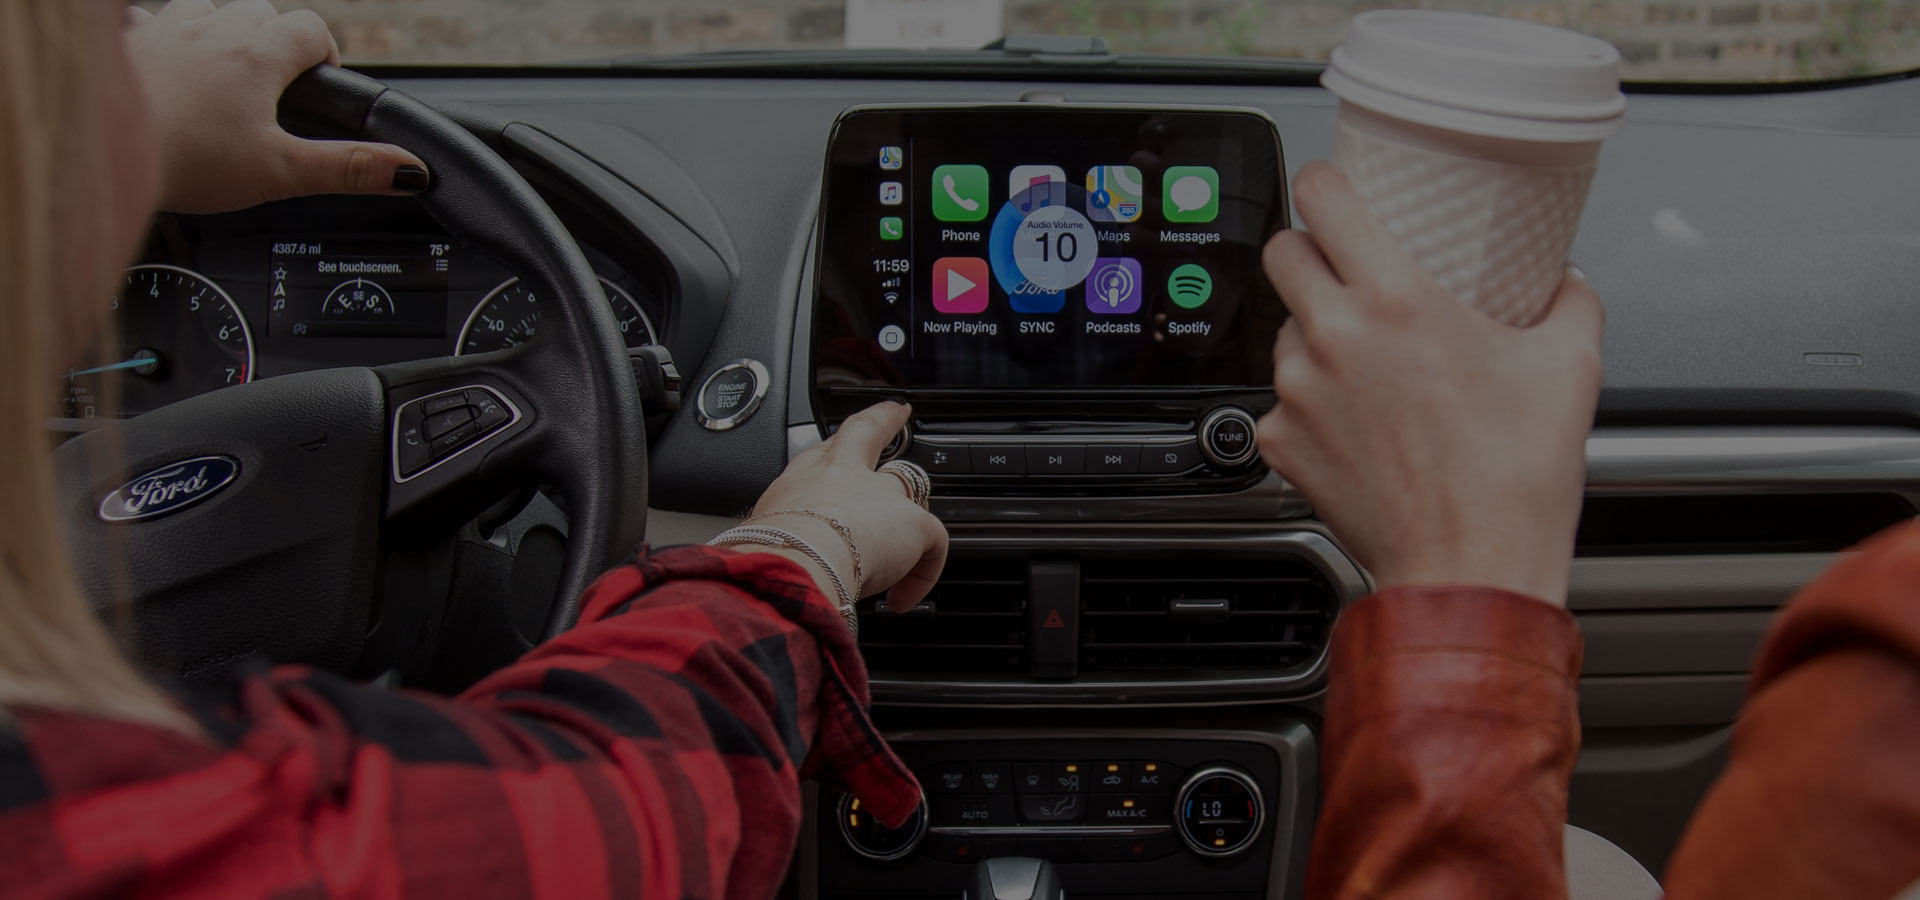 carplay main interface